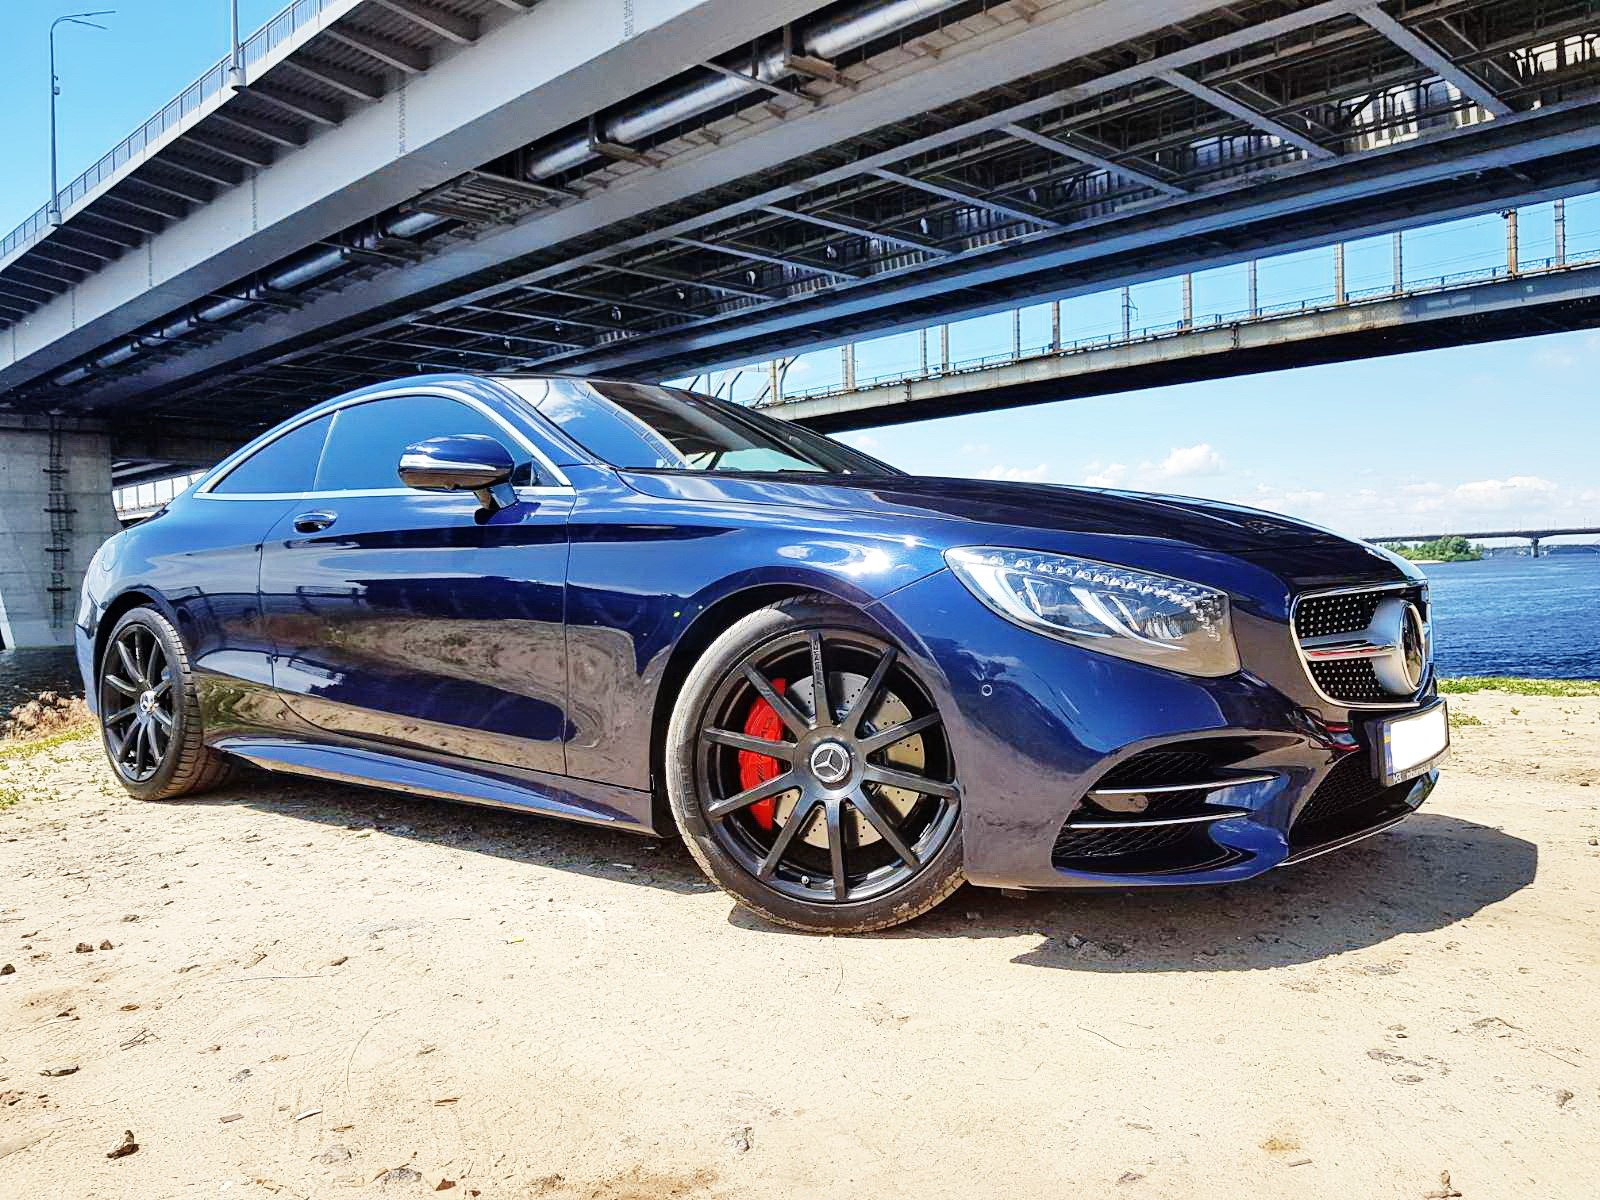 Mercedes-Benz S560 AMG Coupe